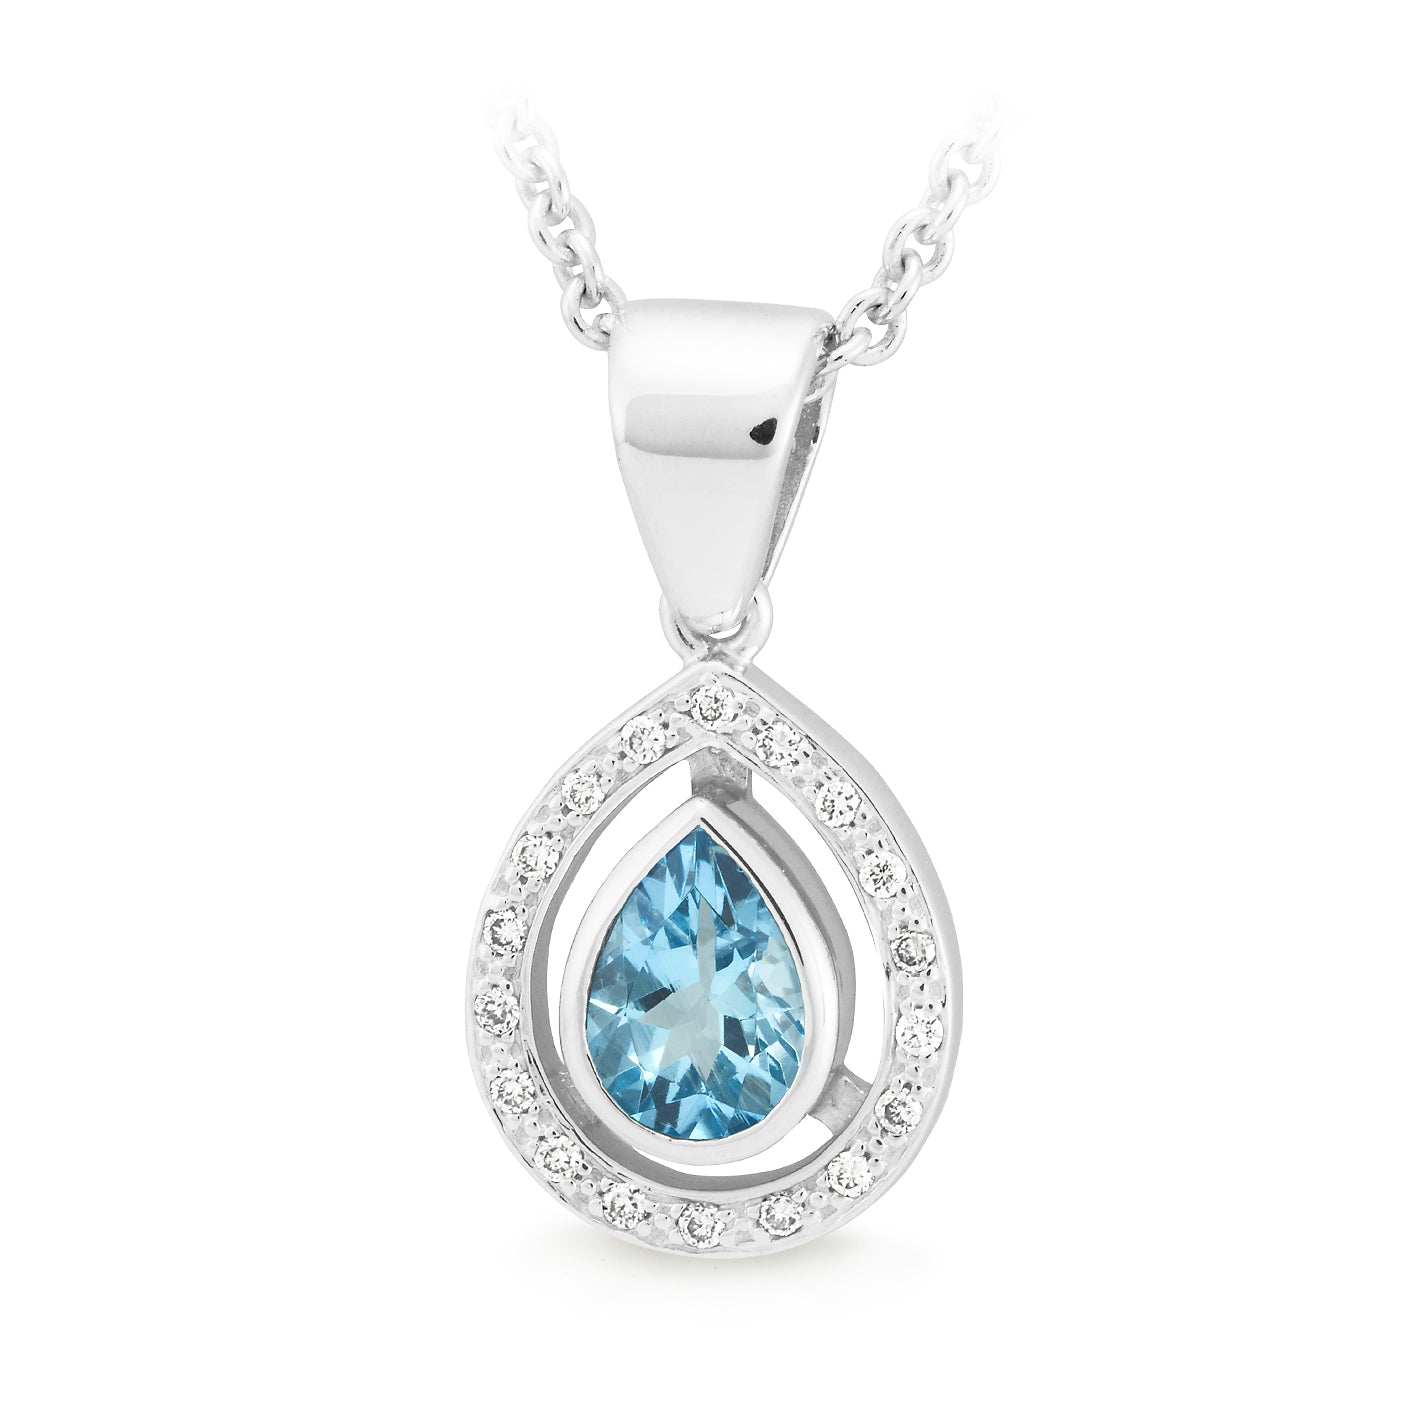 AQUAMARINE (B GRADE) & DIAMOND (SI3 JK) BEZEL/BEAD SET COLOURED STONE PENDANT IN 9CT WHITE GOLD TDW 0.09CT